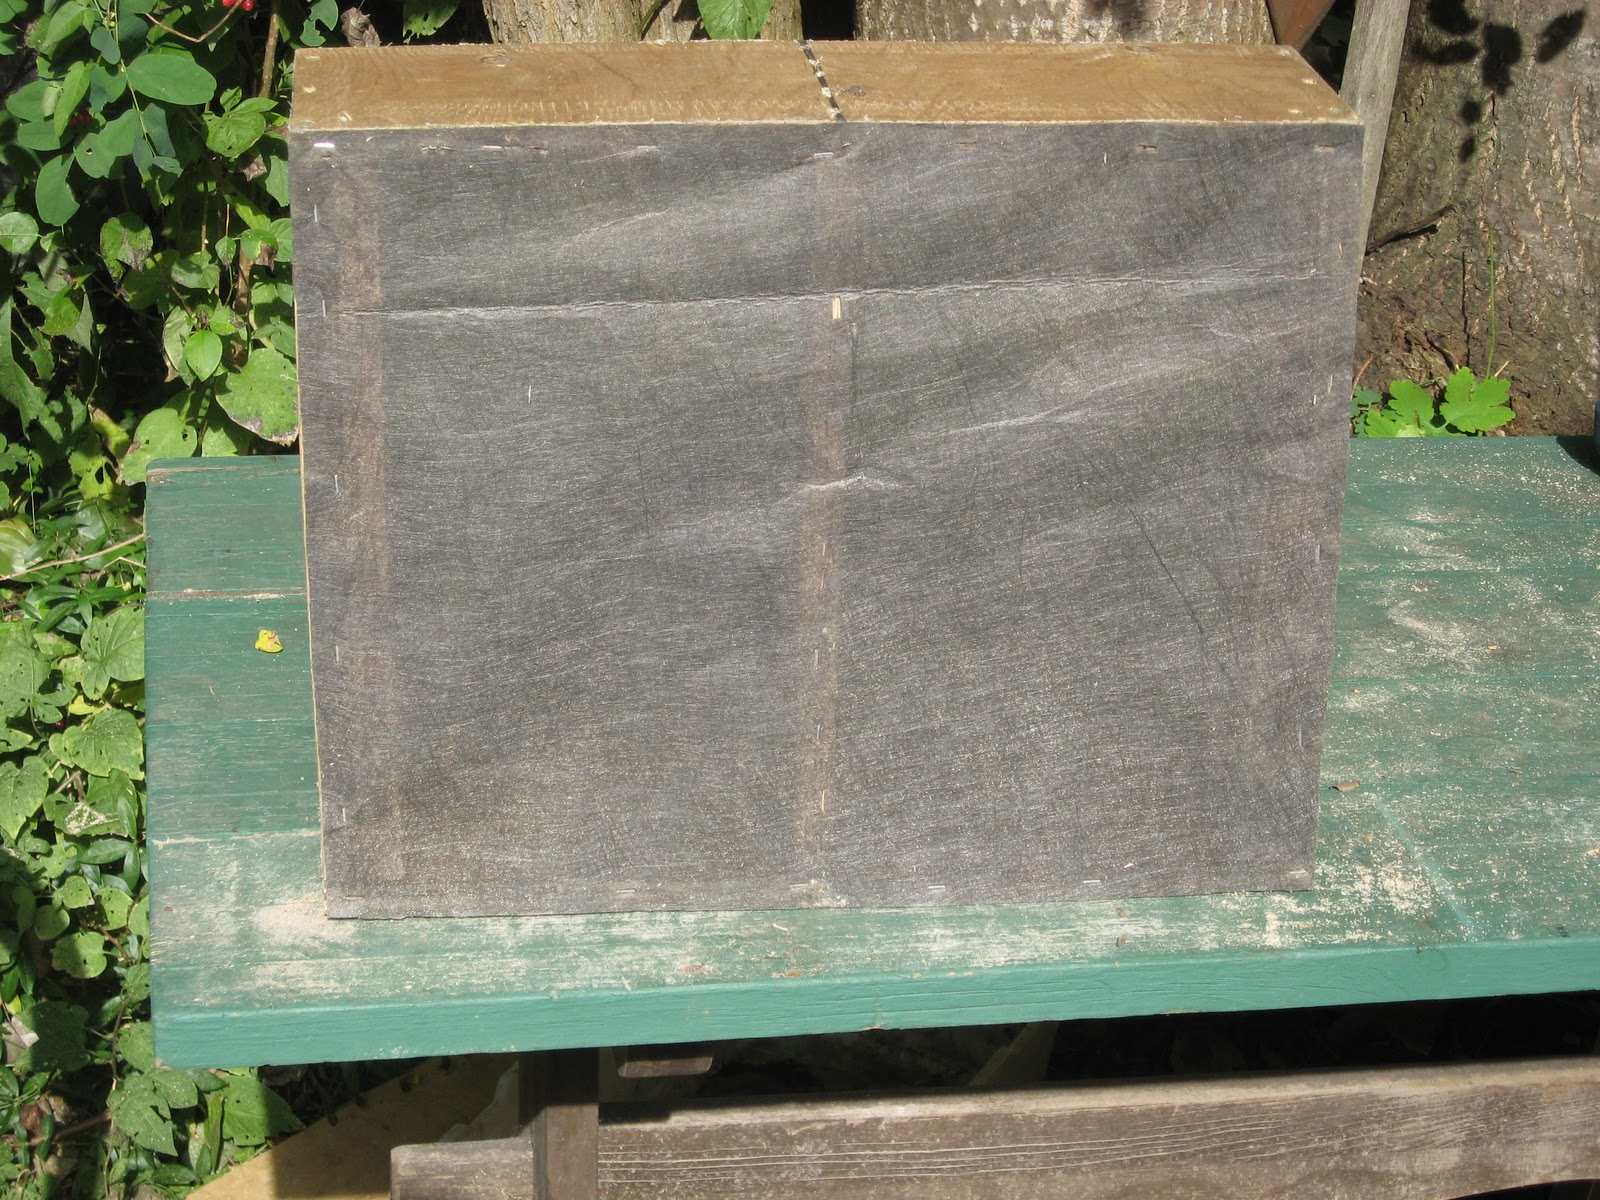 How to make a moisture quilt for a langstroth hive honey - I Stapled Landscape Cloth Porous Over The Bottom Of The Quilt Box More Durable Alternatives To Landscape Cloth Are Window Screen Or 1 8 Inch Hardware